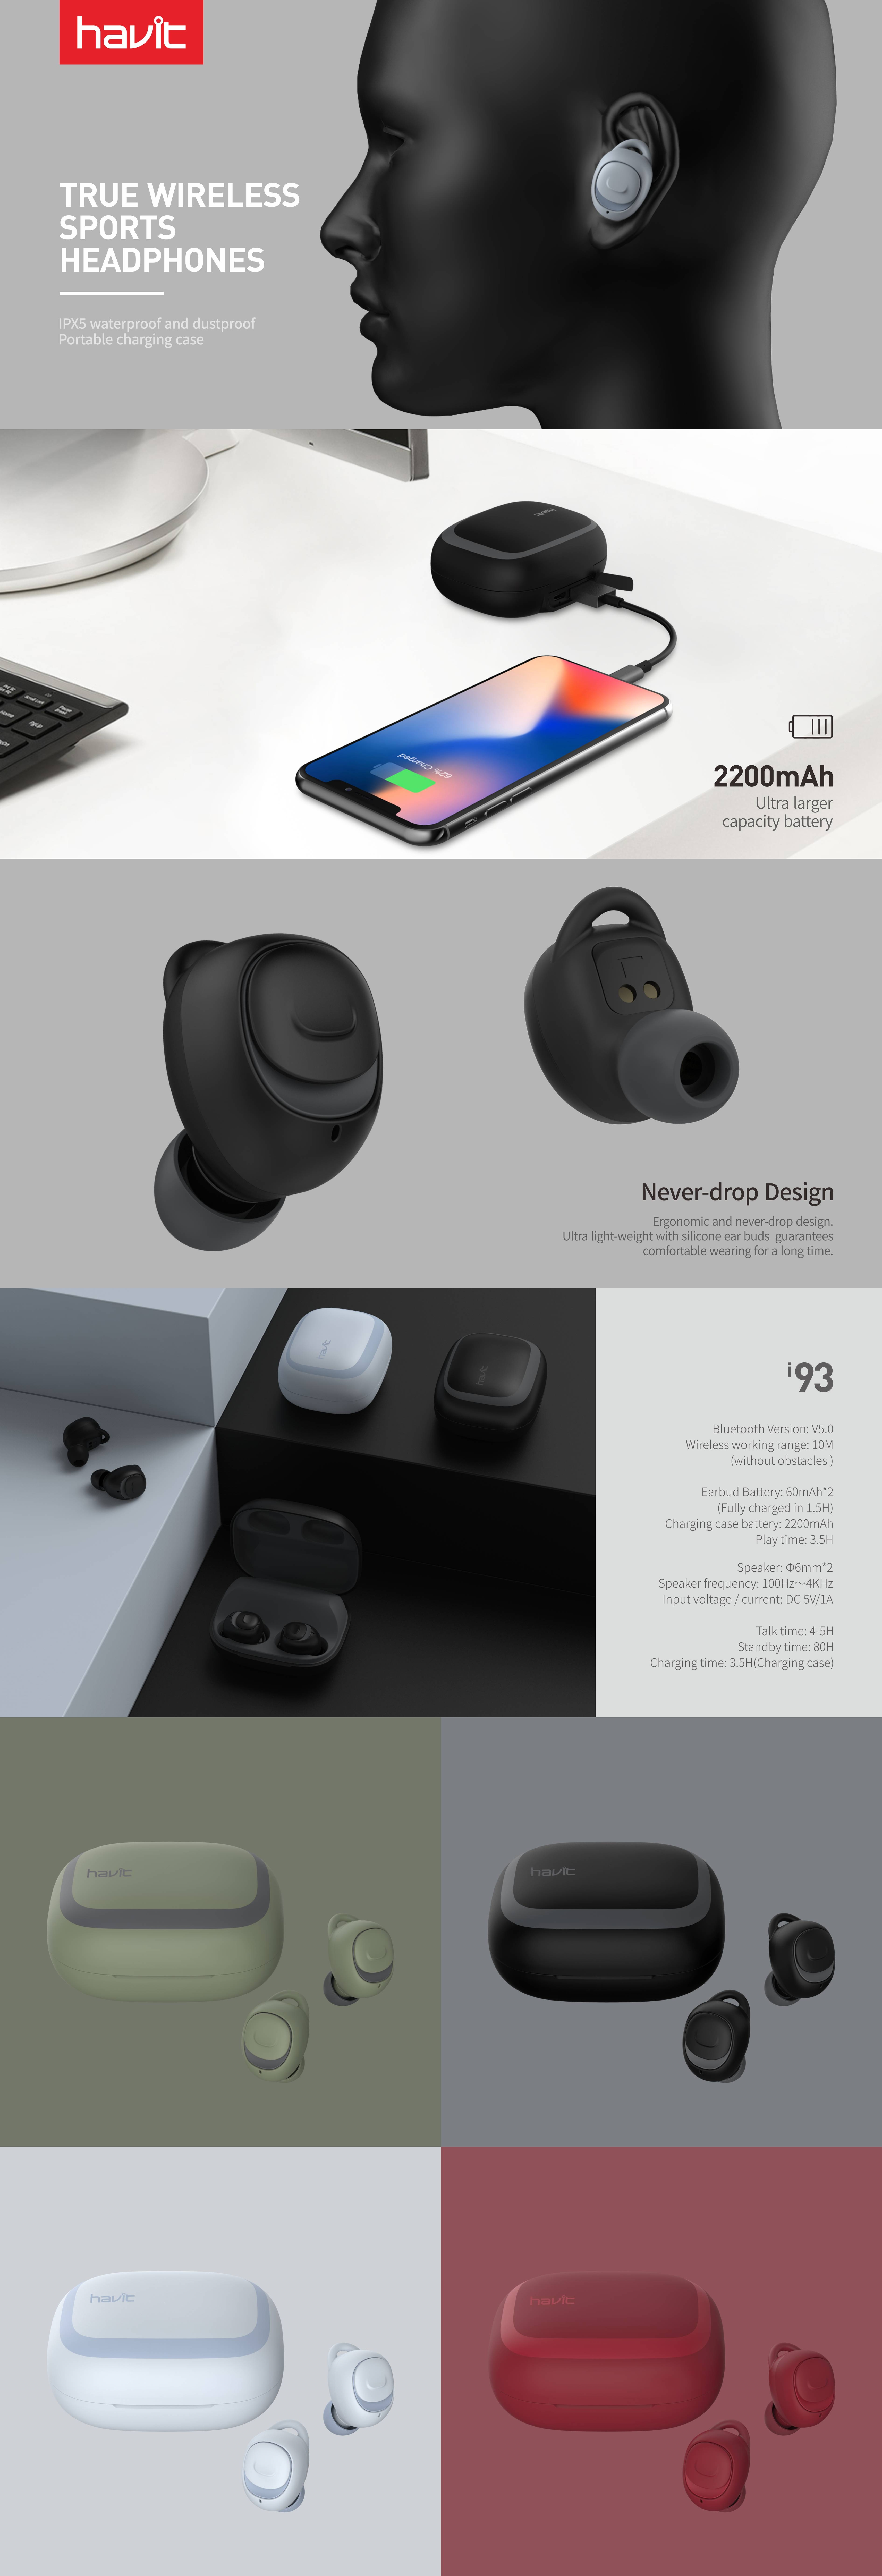 Havit i93 True Wireless Bluetooth Earphones TWS Earbuds